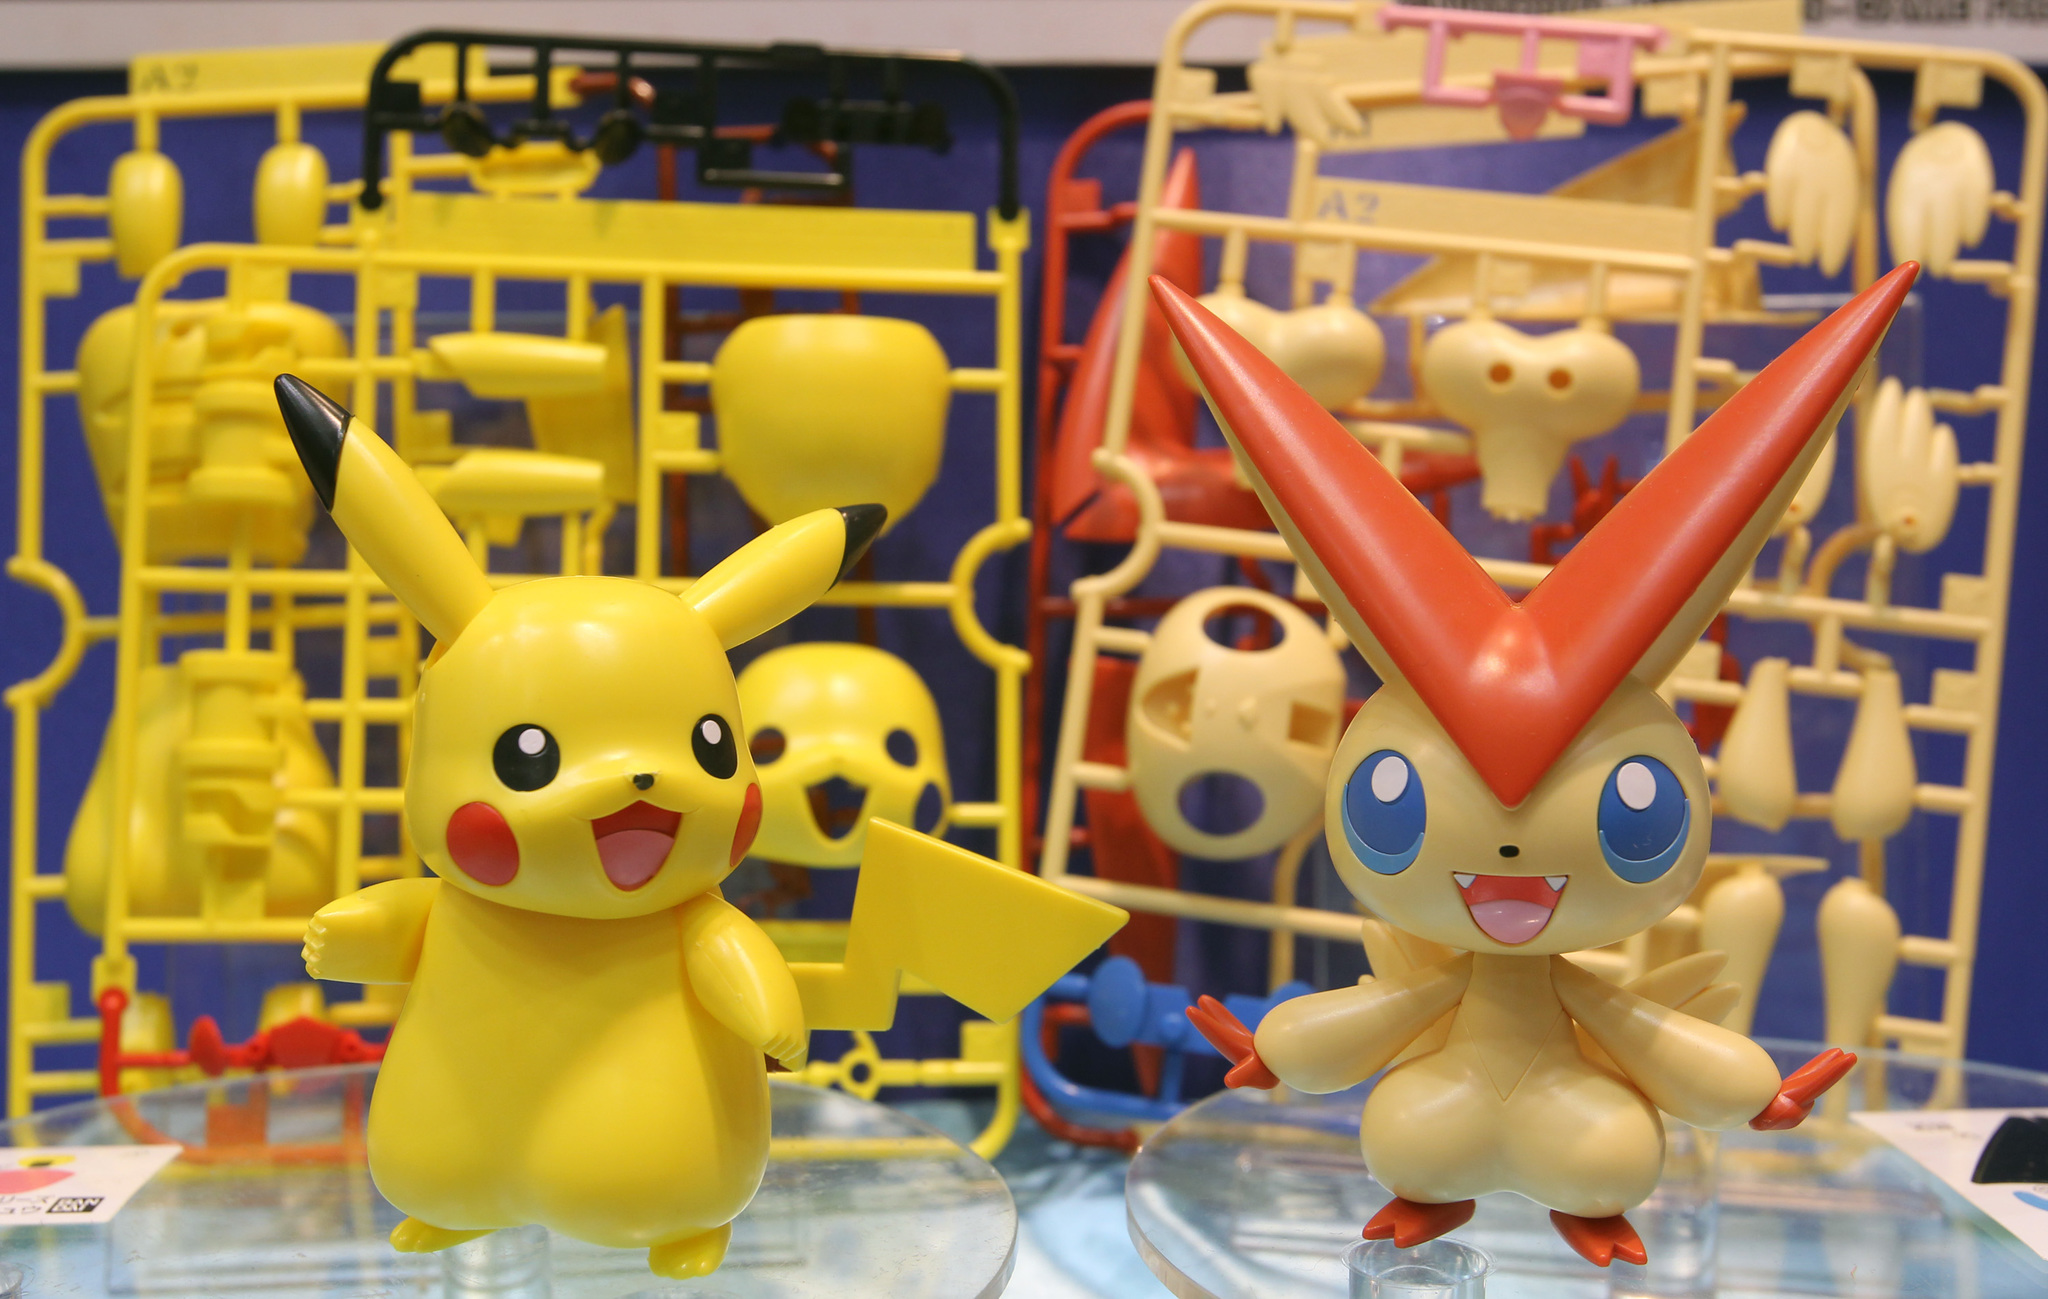 "FIGURAS DE PLASTICO DE LA SERIE POKEMON. PICACHU. Plastic models of Pikachu characters from the video lt;HIT gt;game lt;/HIT gt; ""Pokemon"" sit on display in the Bandai Co. booth at the International lt;HIT gt;Tokyo lt;/HIT gt; Toy lt;HIT gt;Show lt;/HIT gt; 2011 in lt;HIT gt;Tokyo lt;/HIT gt;, Japan, on Thursday, June 16, 2011. The trade lt;HIT gt;show lt;/HIT gt; will be held through June 19. Photographer: Junko Kimura/Bloomberg"